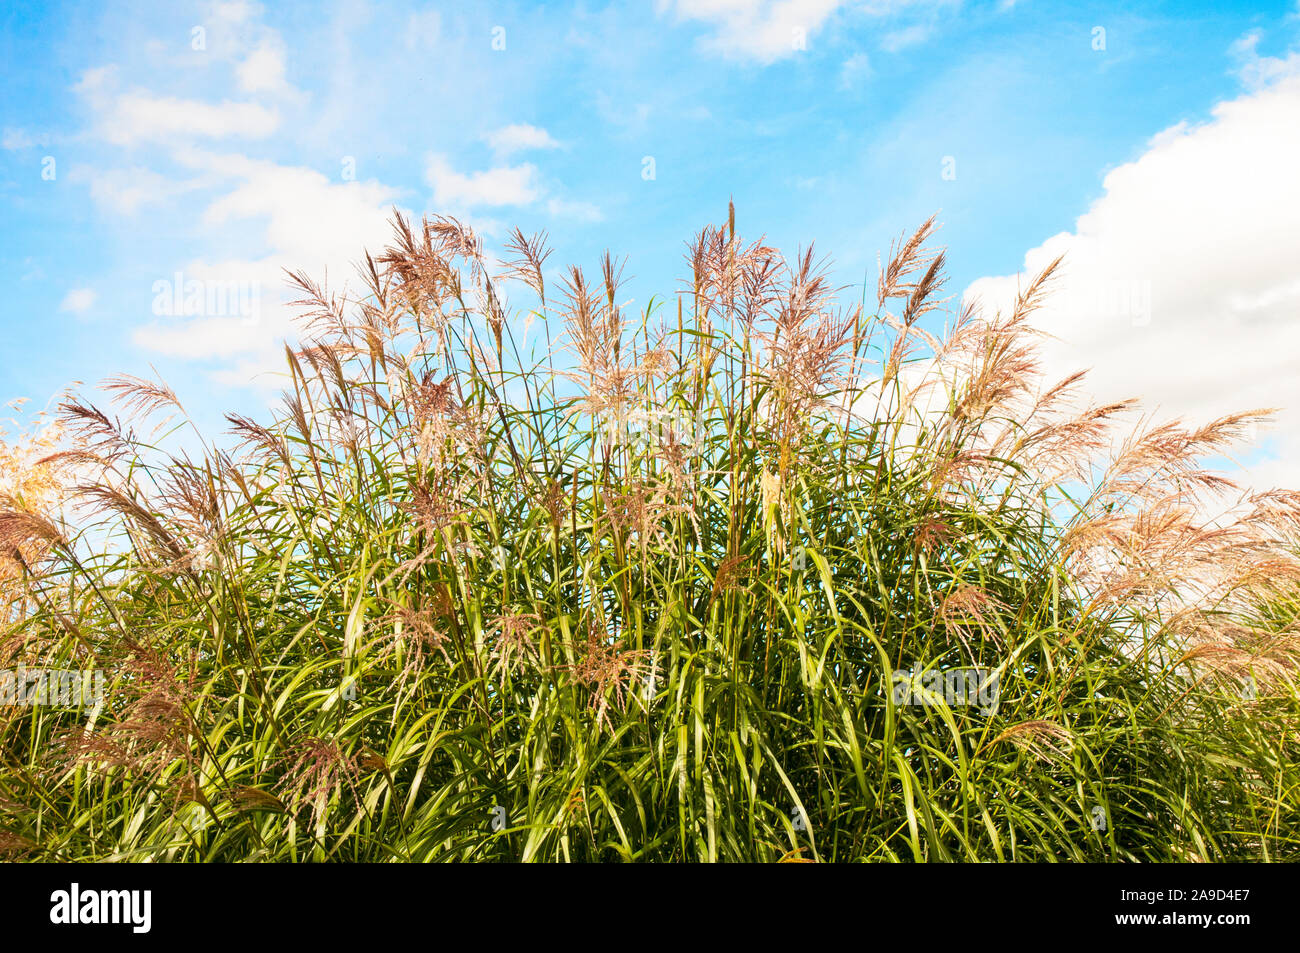 Large Clump Of Miscanthus Sinensis Ornamental Grass Growing In A